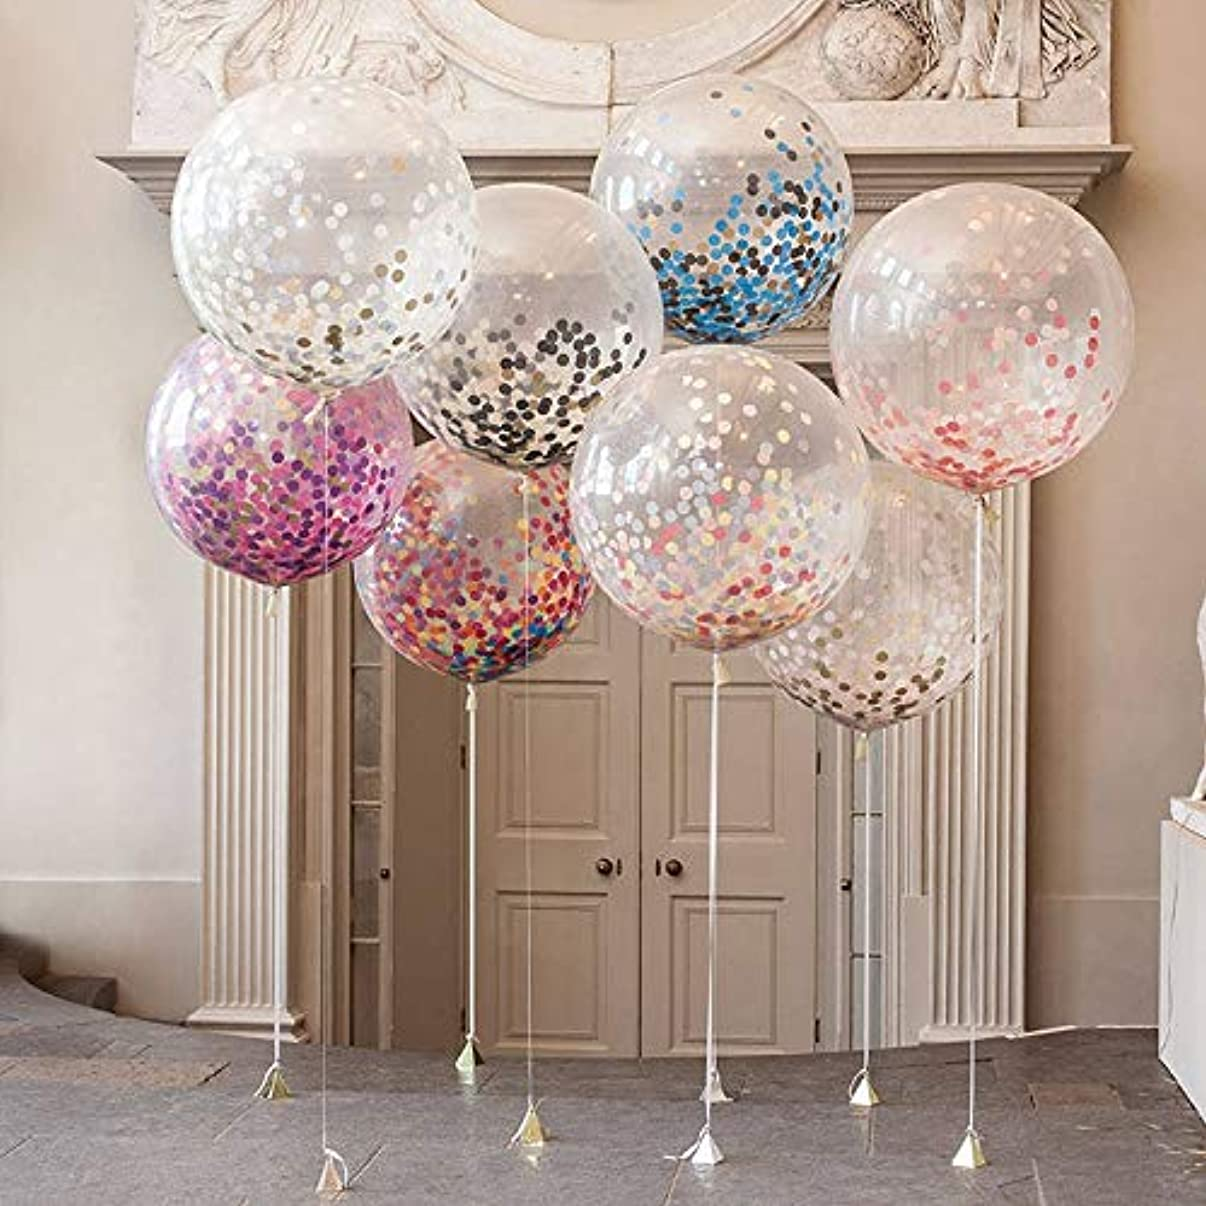 Party Supplies - Quickdone 1pc 36 Inch Clear Confetti Latex Balloons Wedding Decoration Festival Baby Shower Birthday - Superhero Story India Party Deere Elderly Adult Girl Heroes Princess Ocea